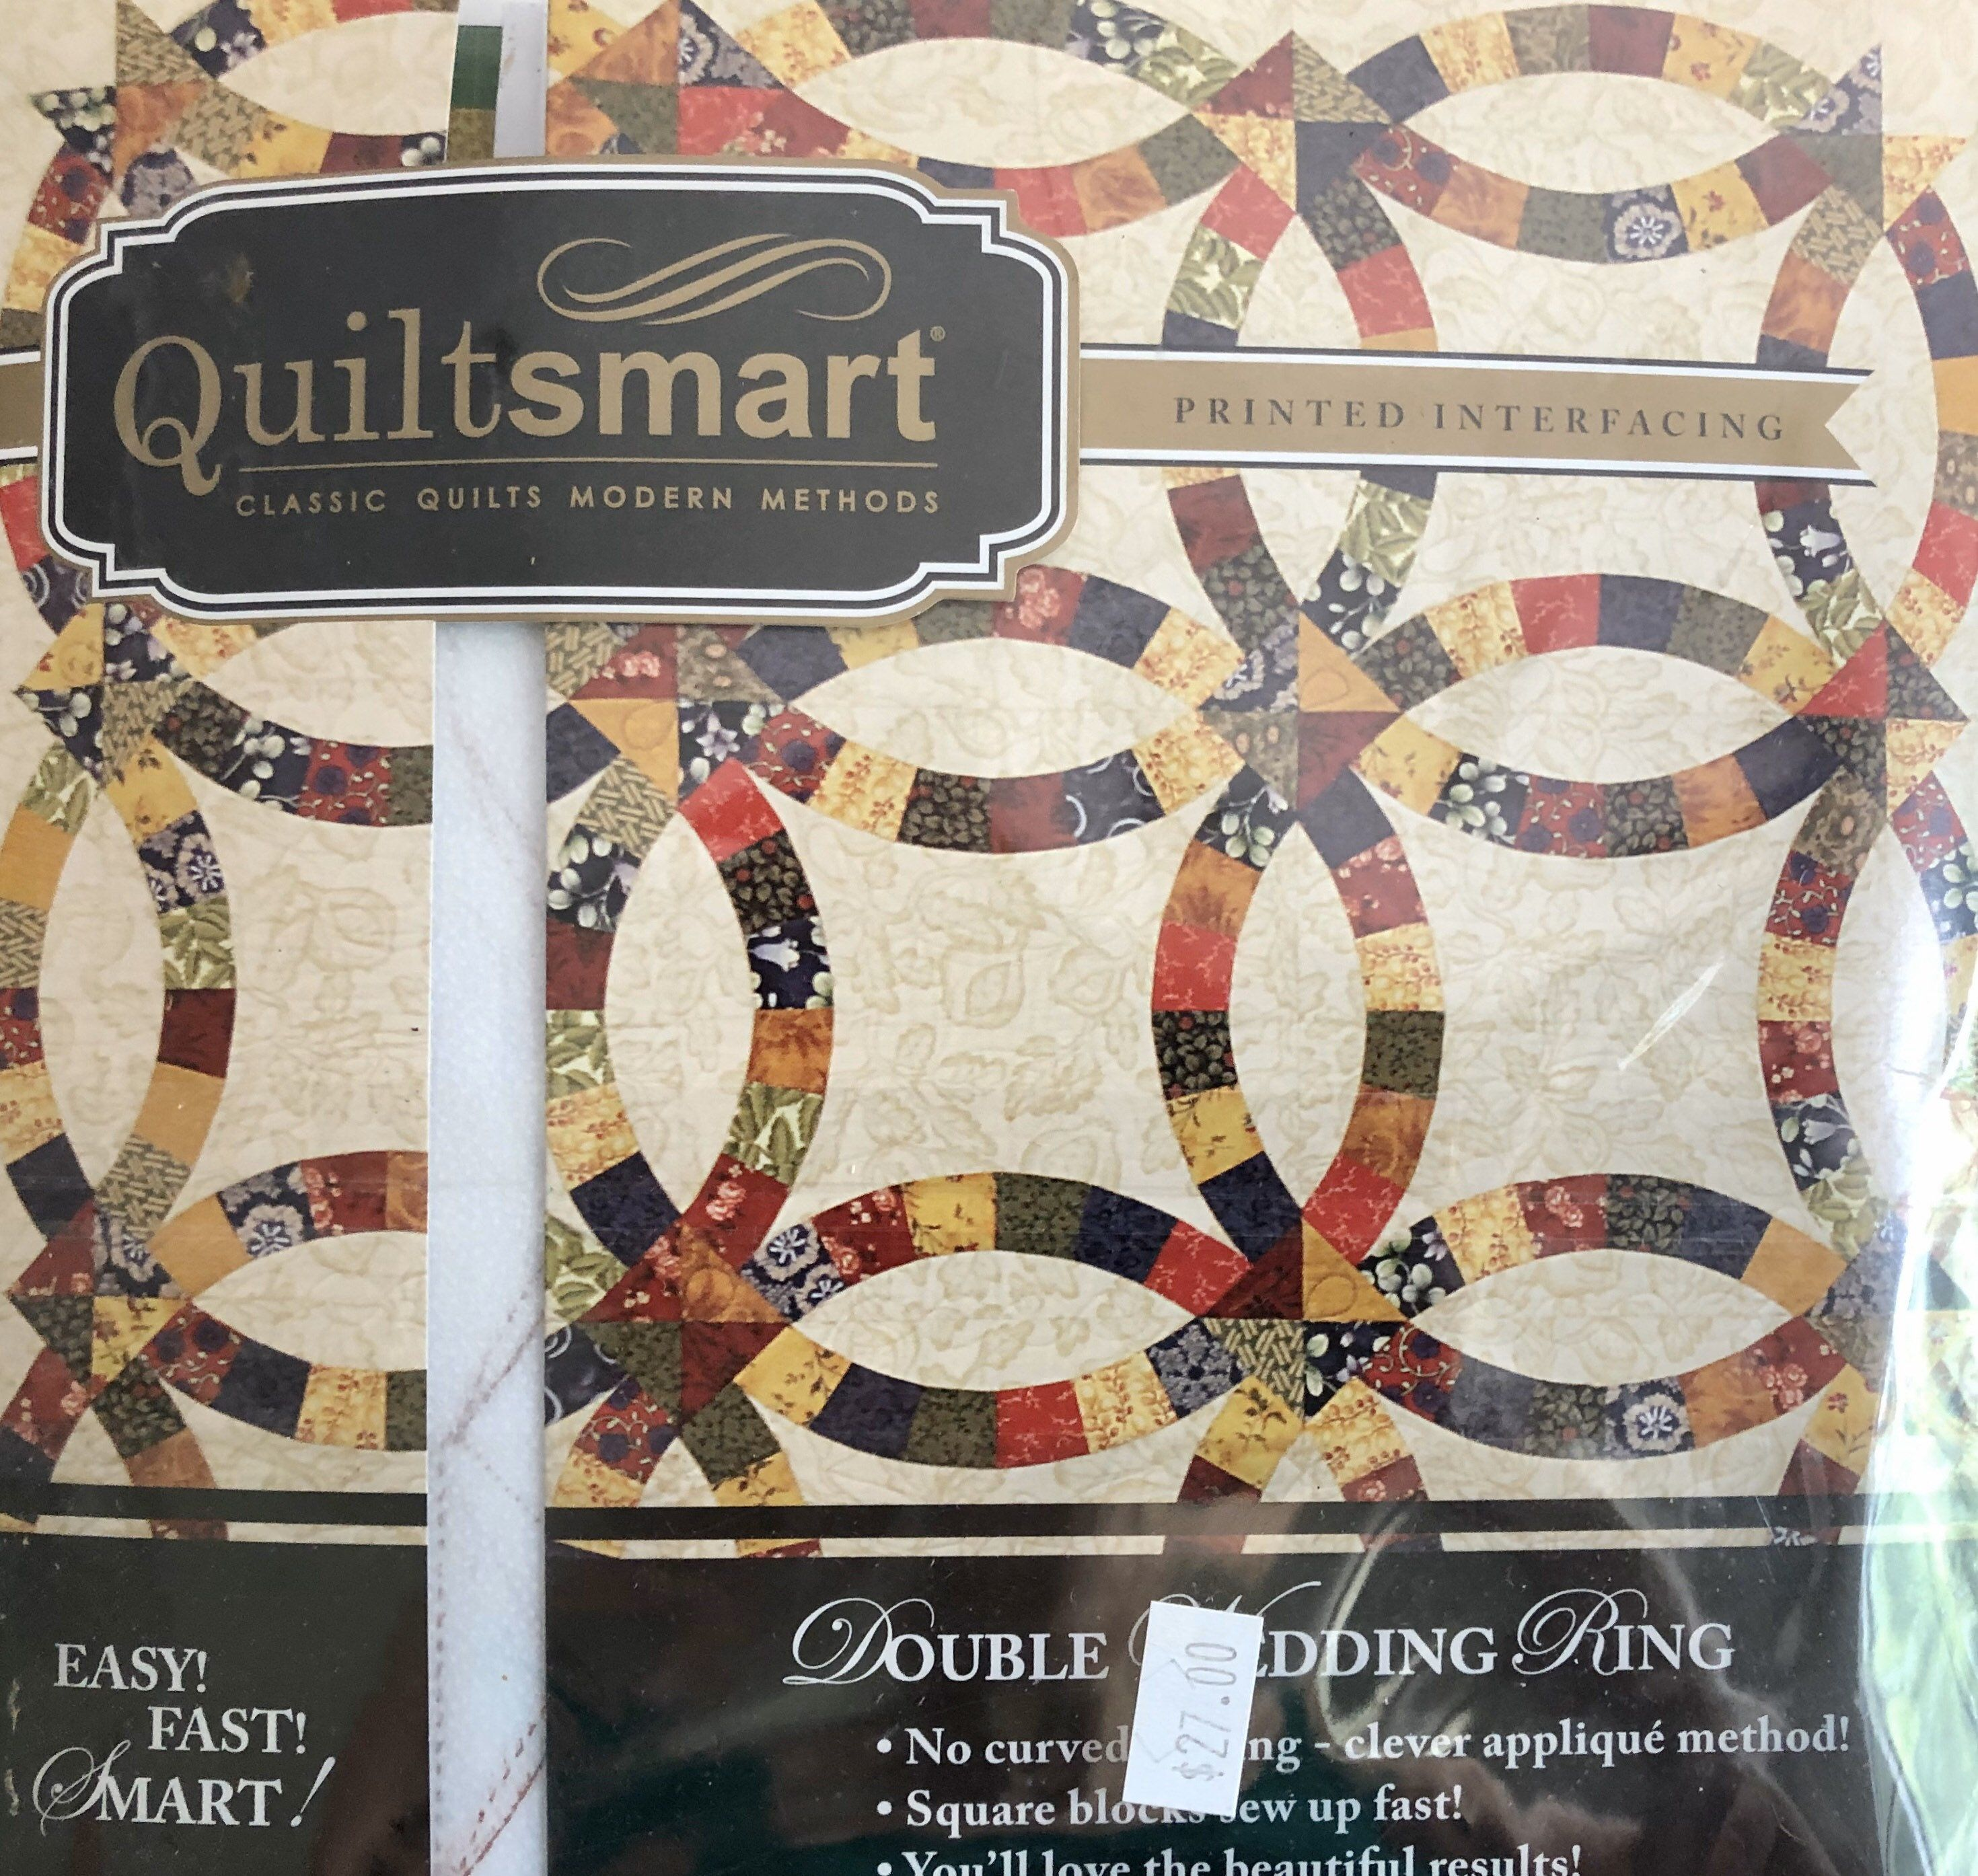 Quiltsmart Double Wedding Ring Interfacing In 2020 Double Wedding Double Wedding Rings Double Wedding Ring Quilt